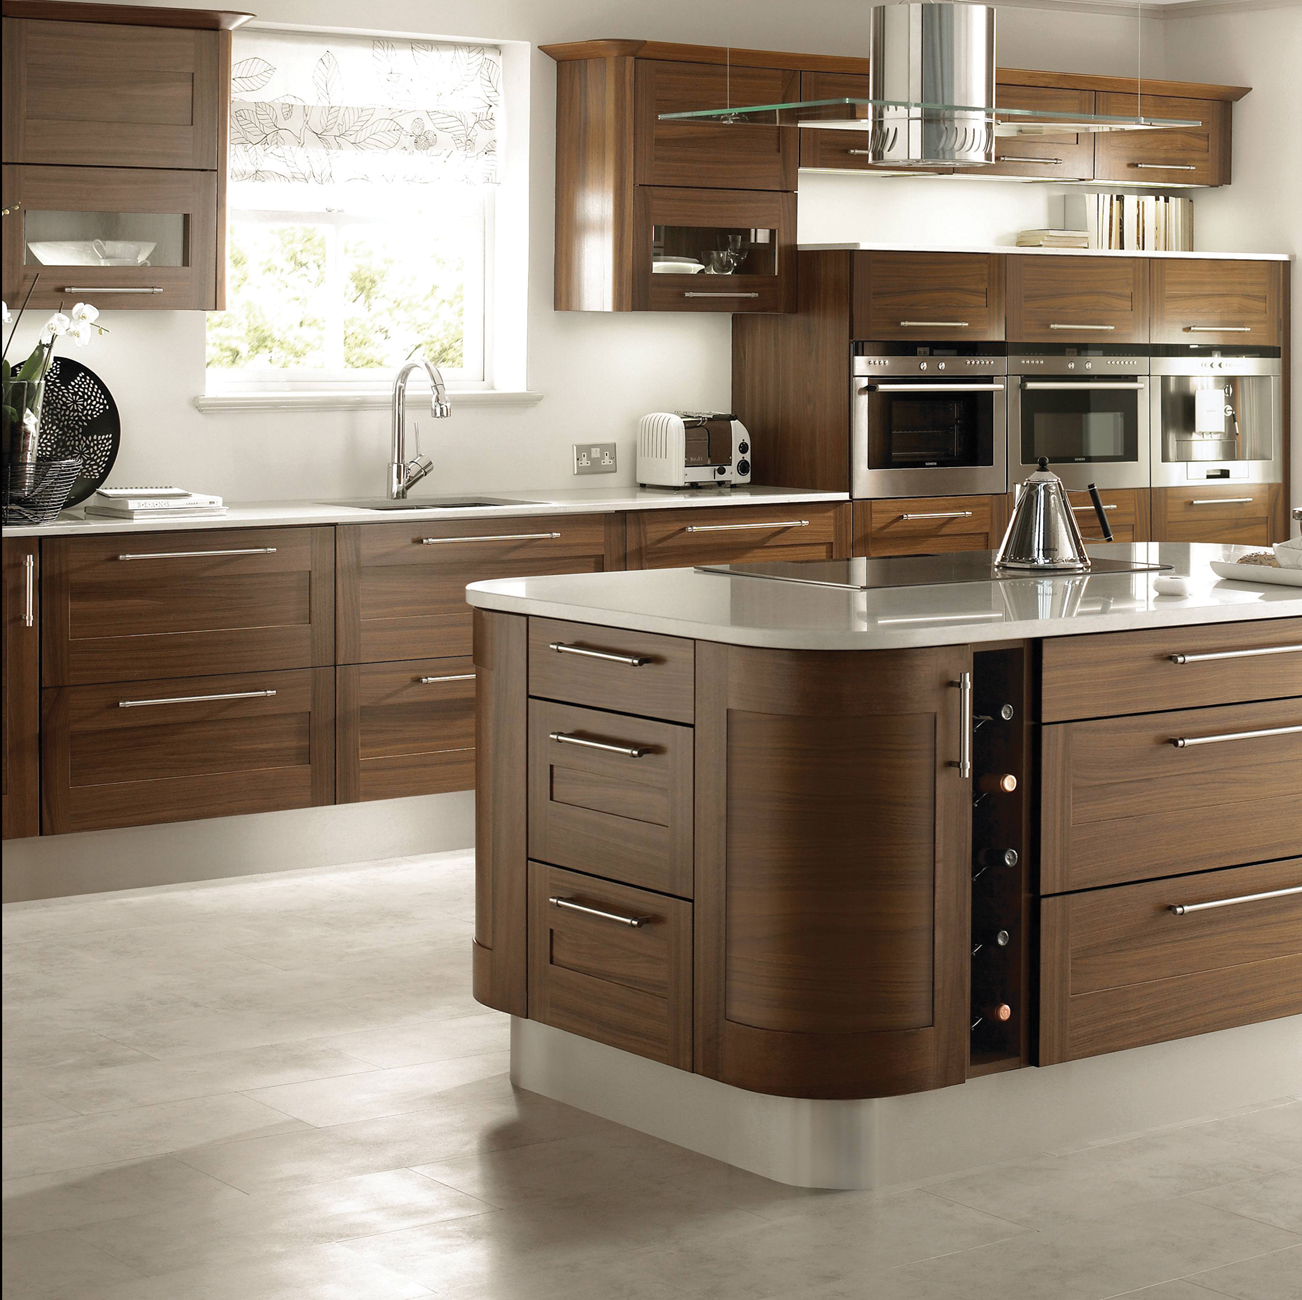 Domestic kitchens details kitchencare for Kitchen design pakistan